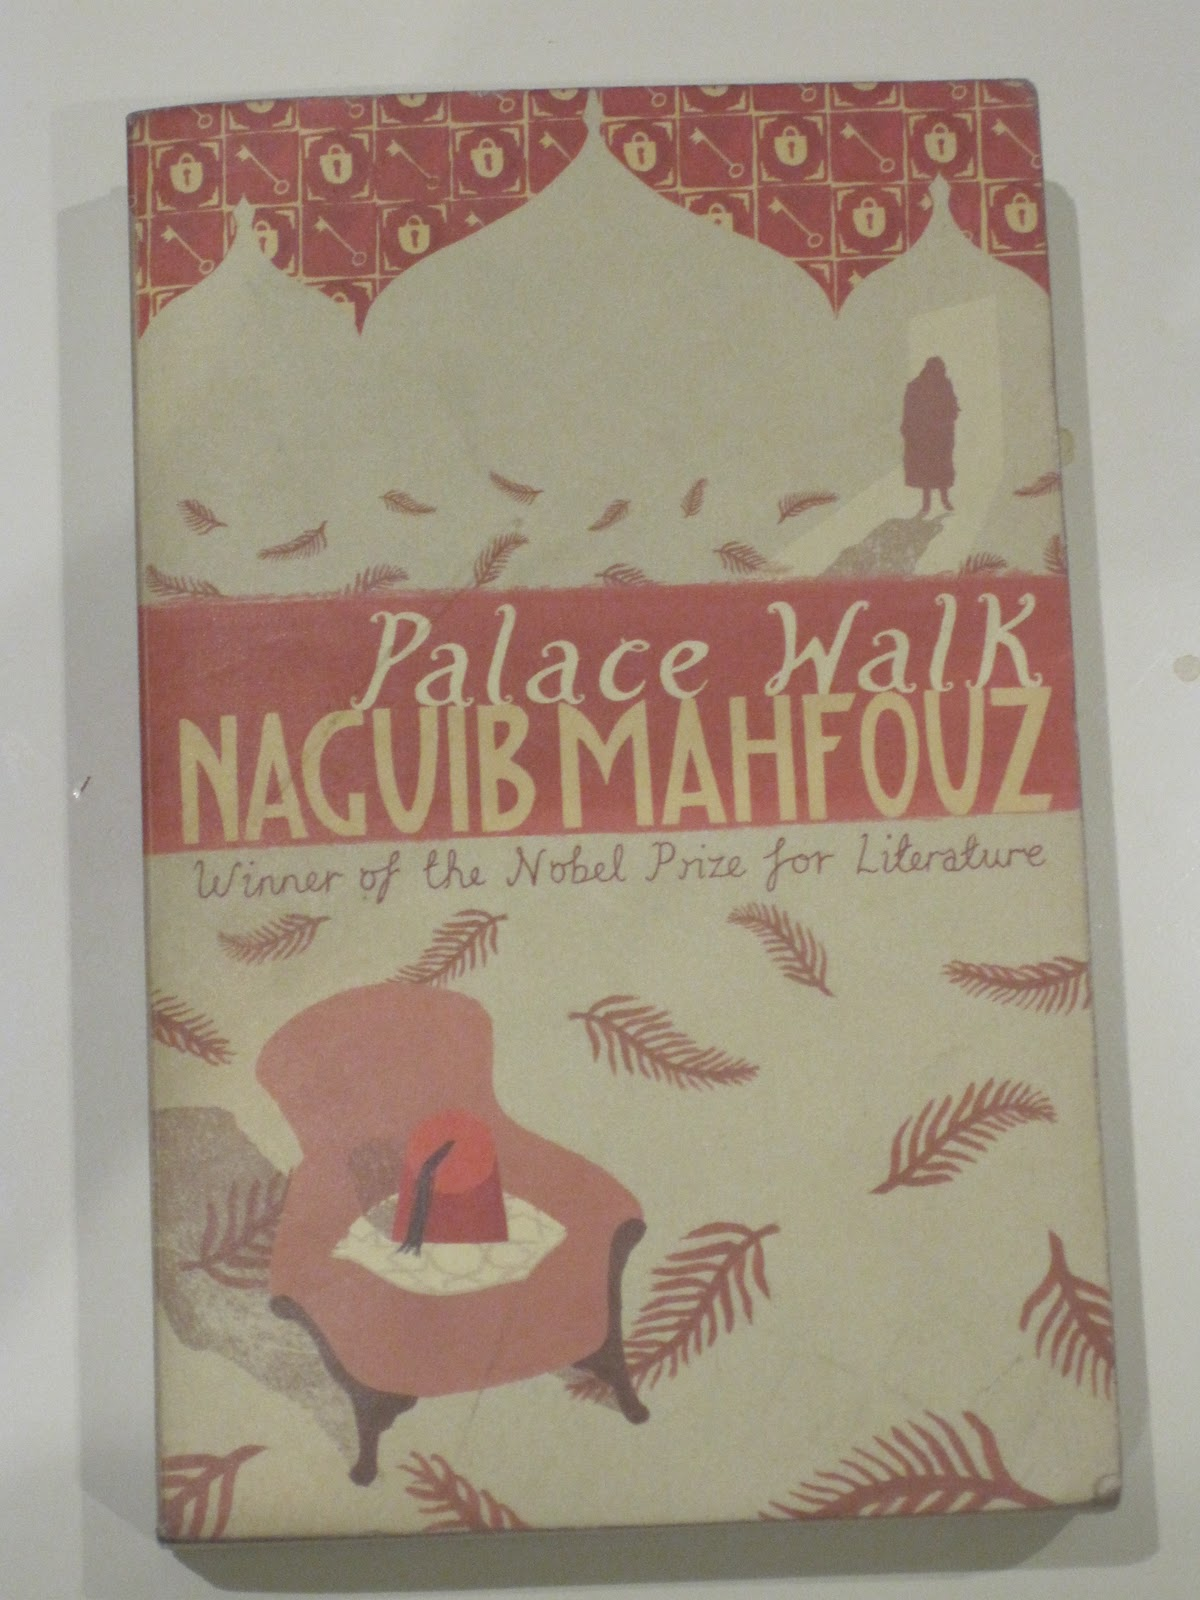 a review of a book on egypt by naguib mahfouz His work is mostly concerned with his native country of egypt, and covers a wide   the london review of books once said that naguib mahfouz was not only a.